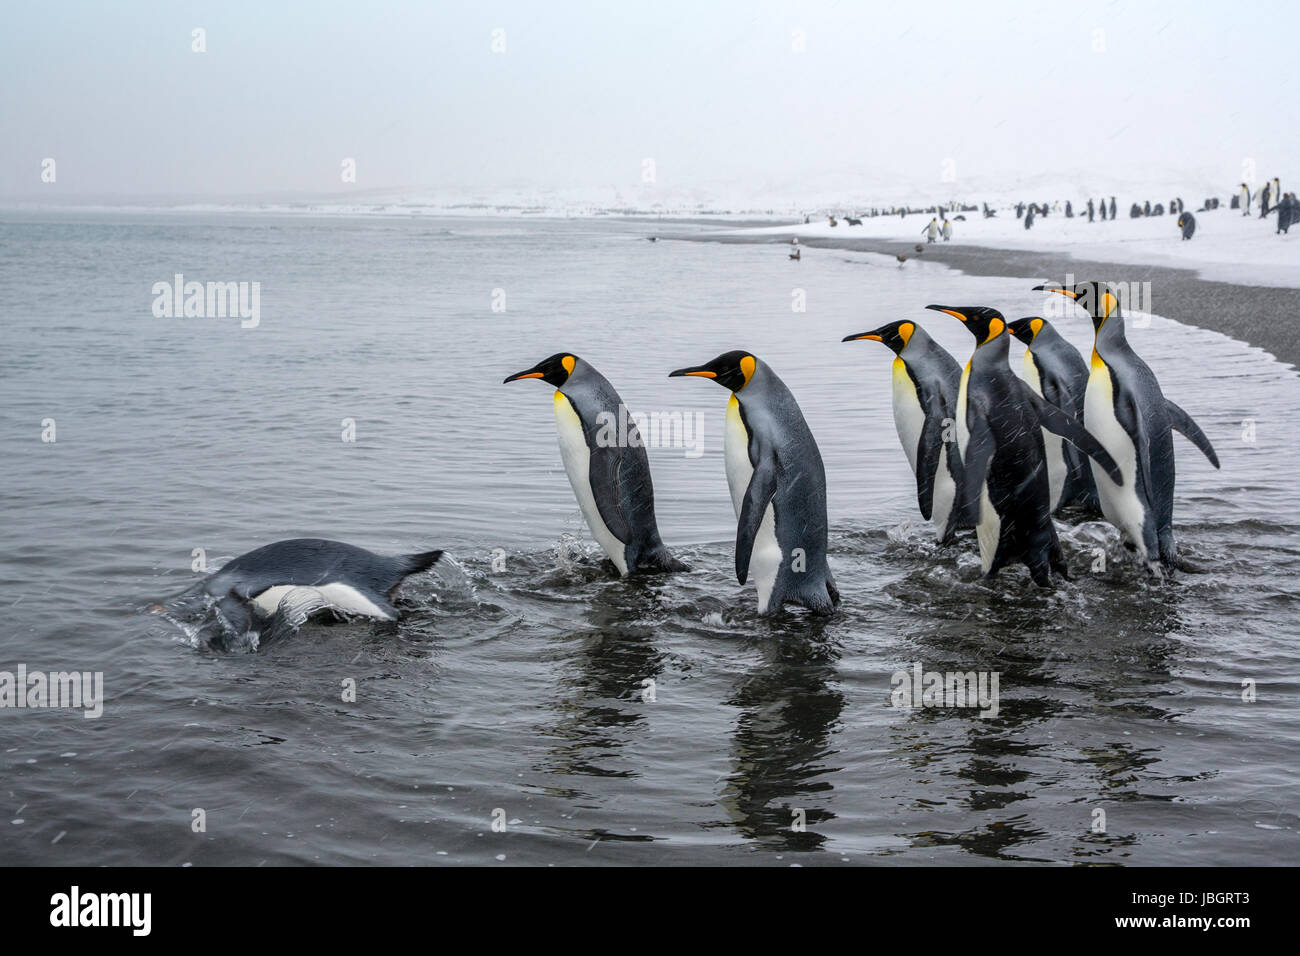 King penguins on South Georgia island - Stock Image